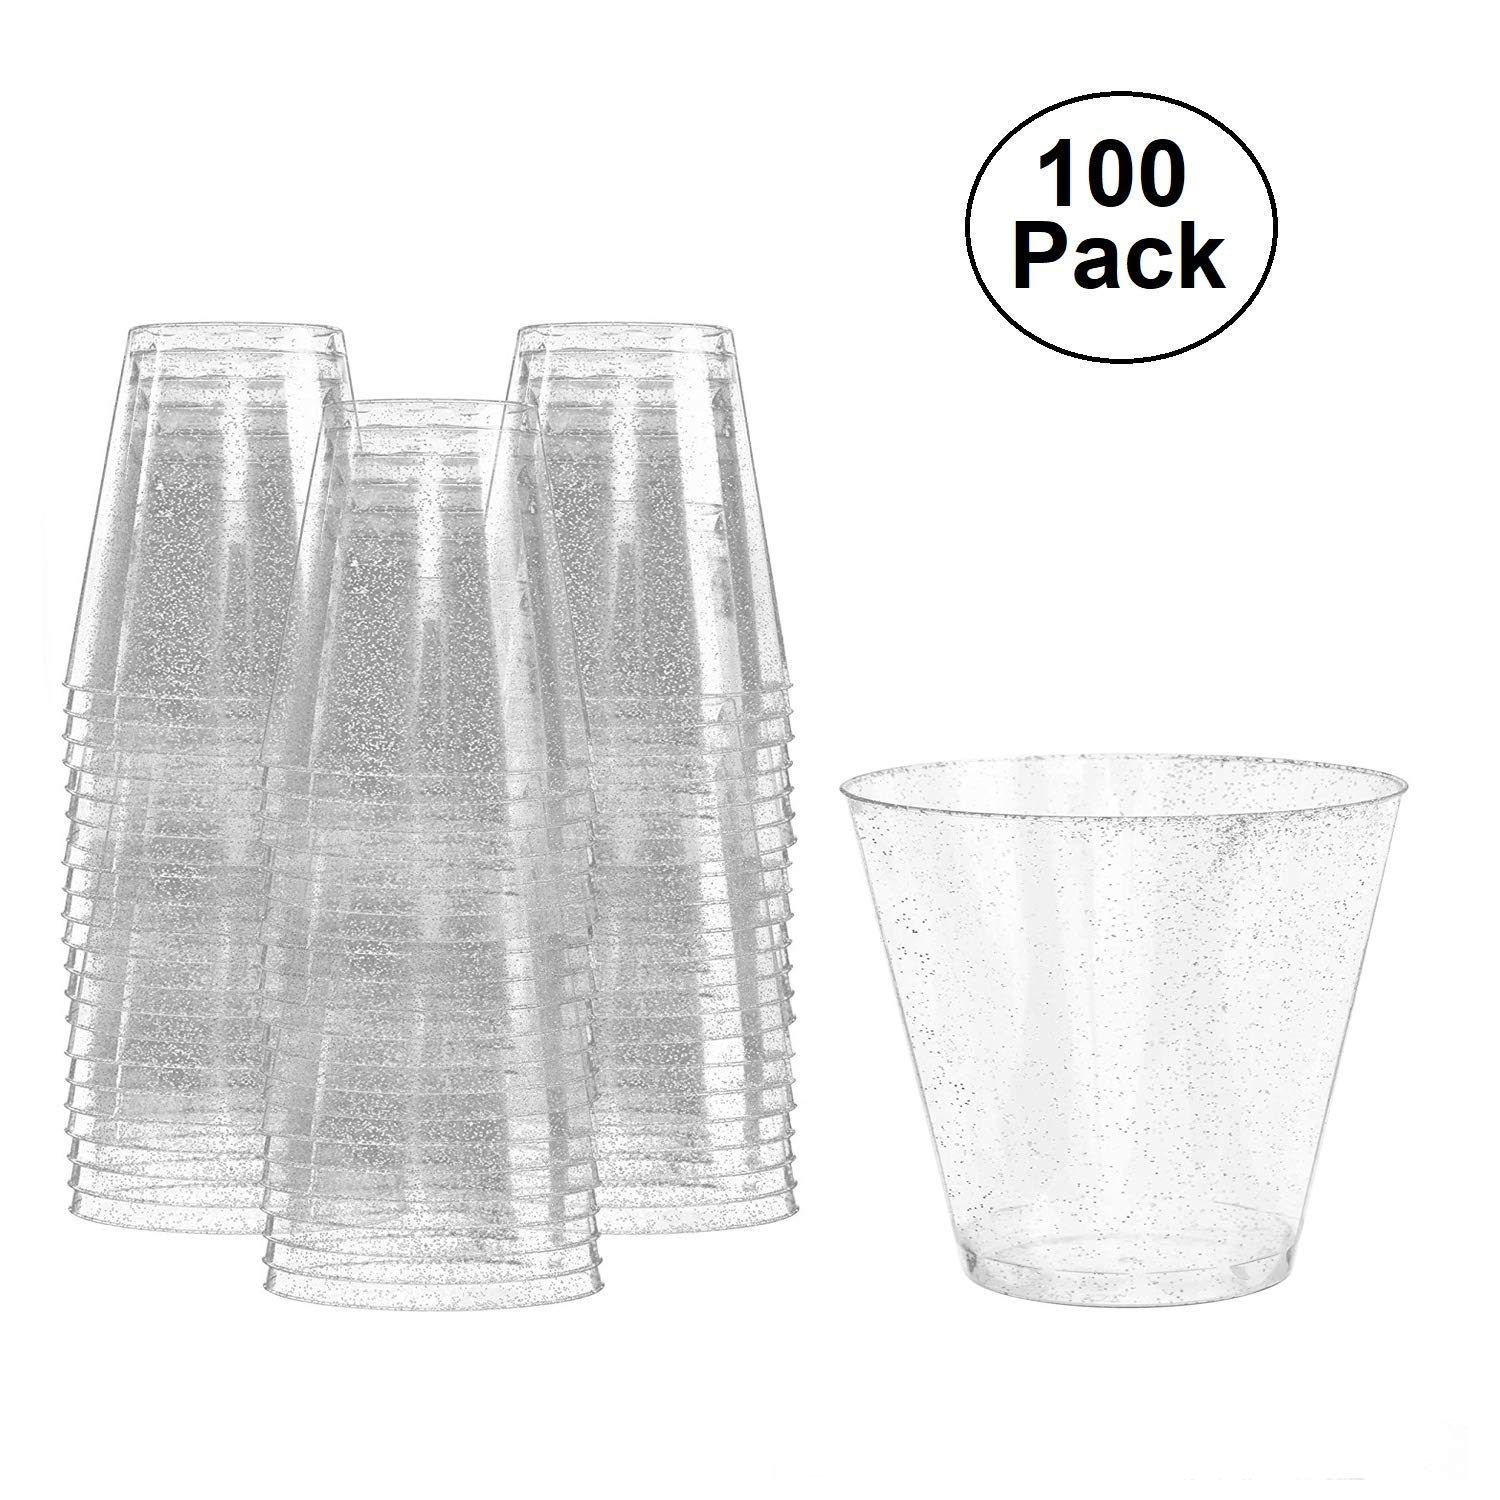 Eco Disposable Cups, 9 oz Plastic Cups, 100 Count Glitter Wedding Cups Party Cups (US STOCK) (Silver)